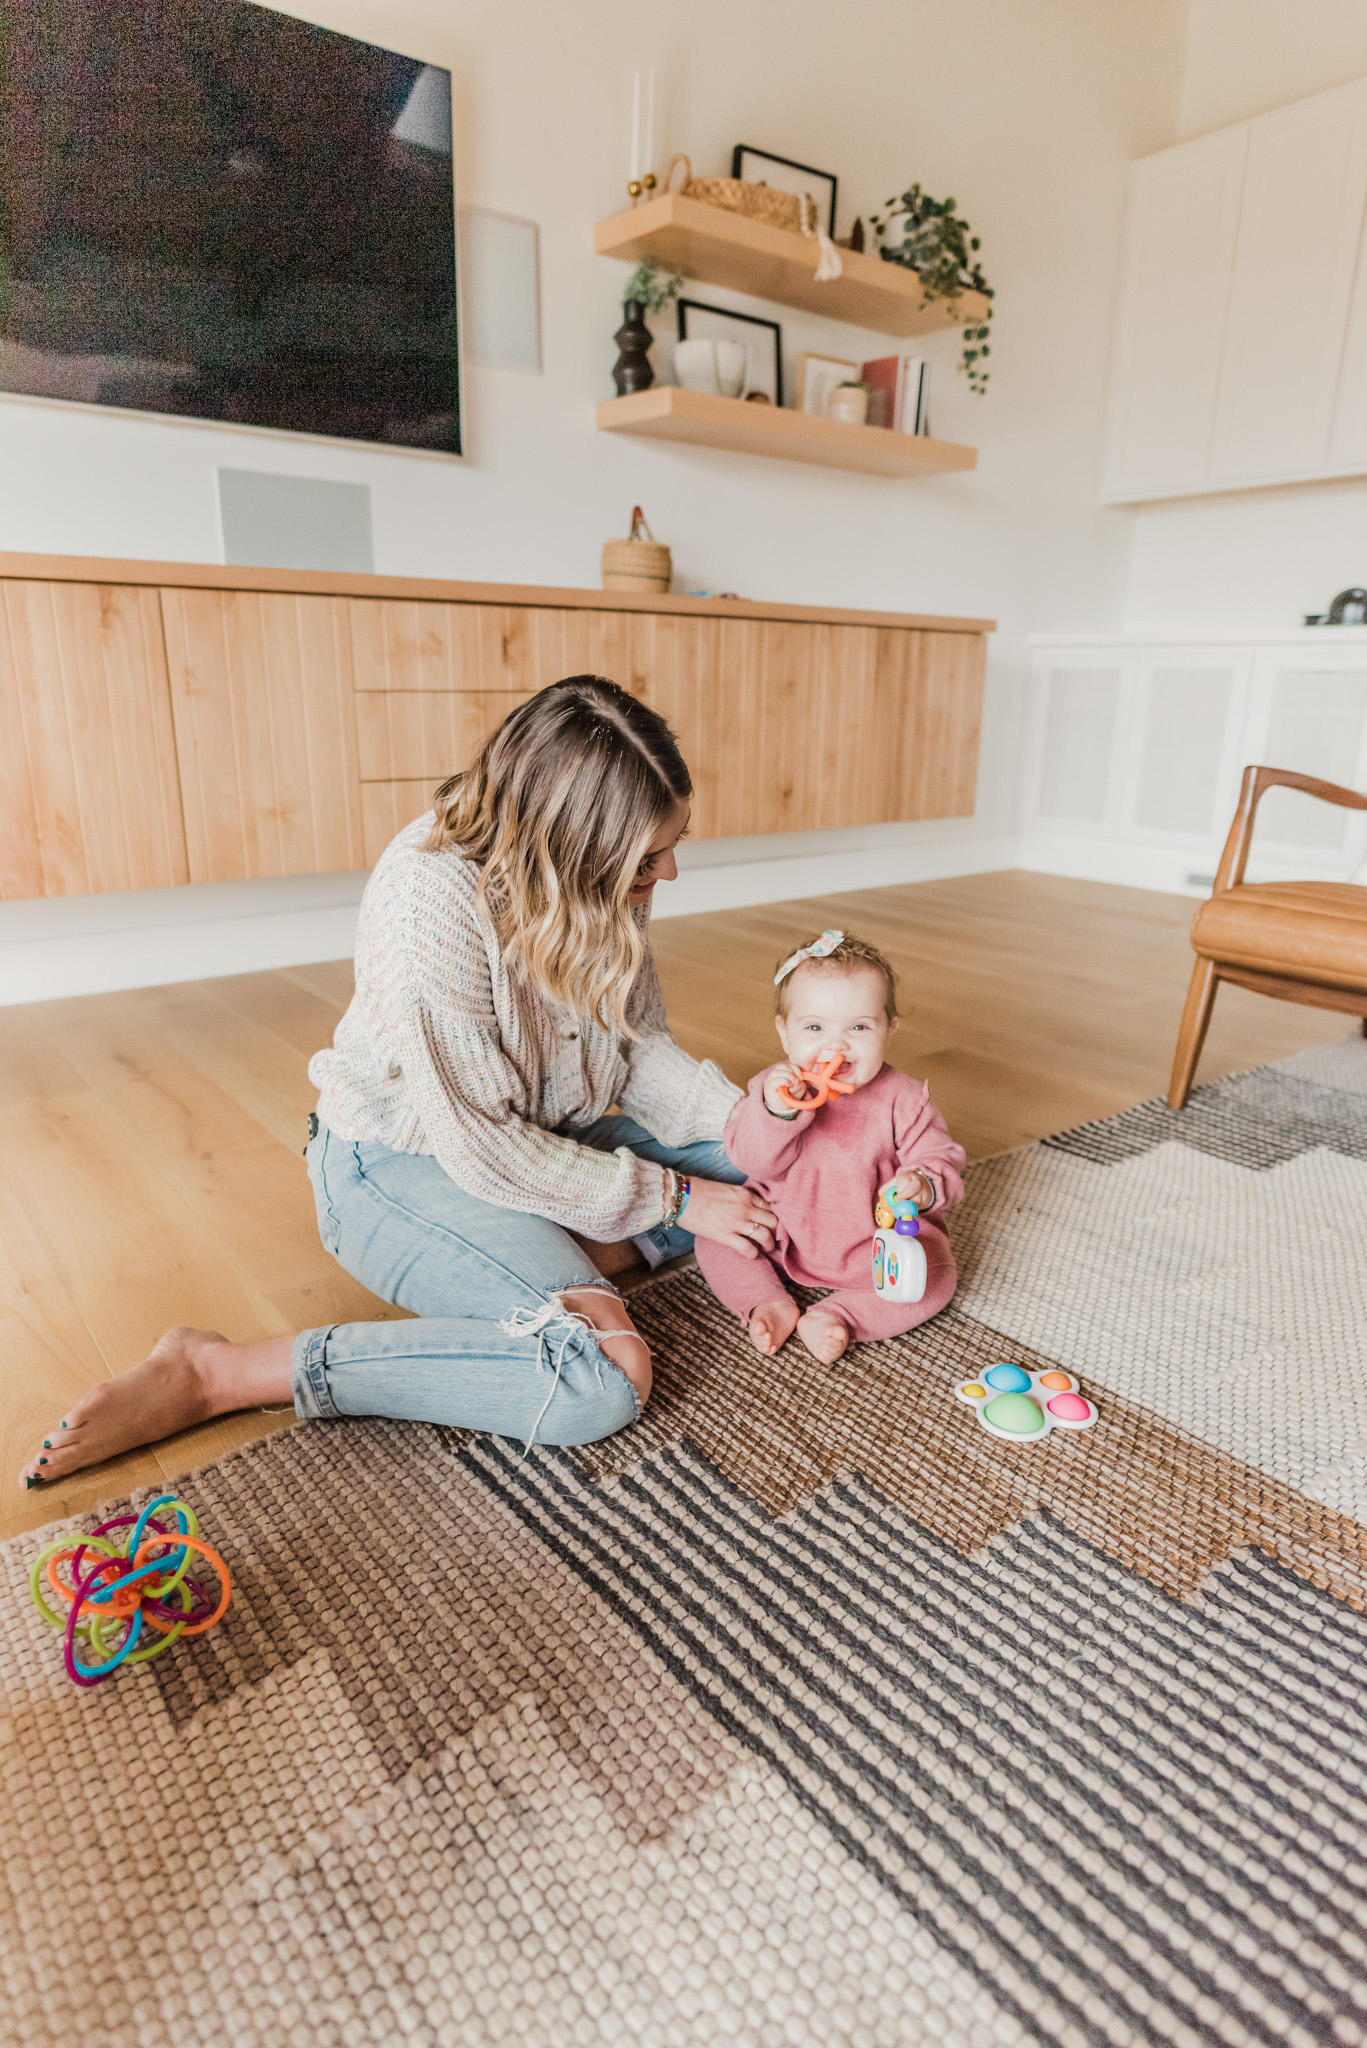 Easter Basket Gift Ideas by popular San Diego lifestyle blog, Navy Grace: image of a mom and baby girl sitting on floor and playing with baby toys together.